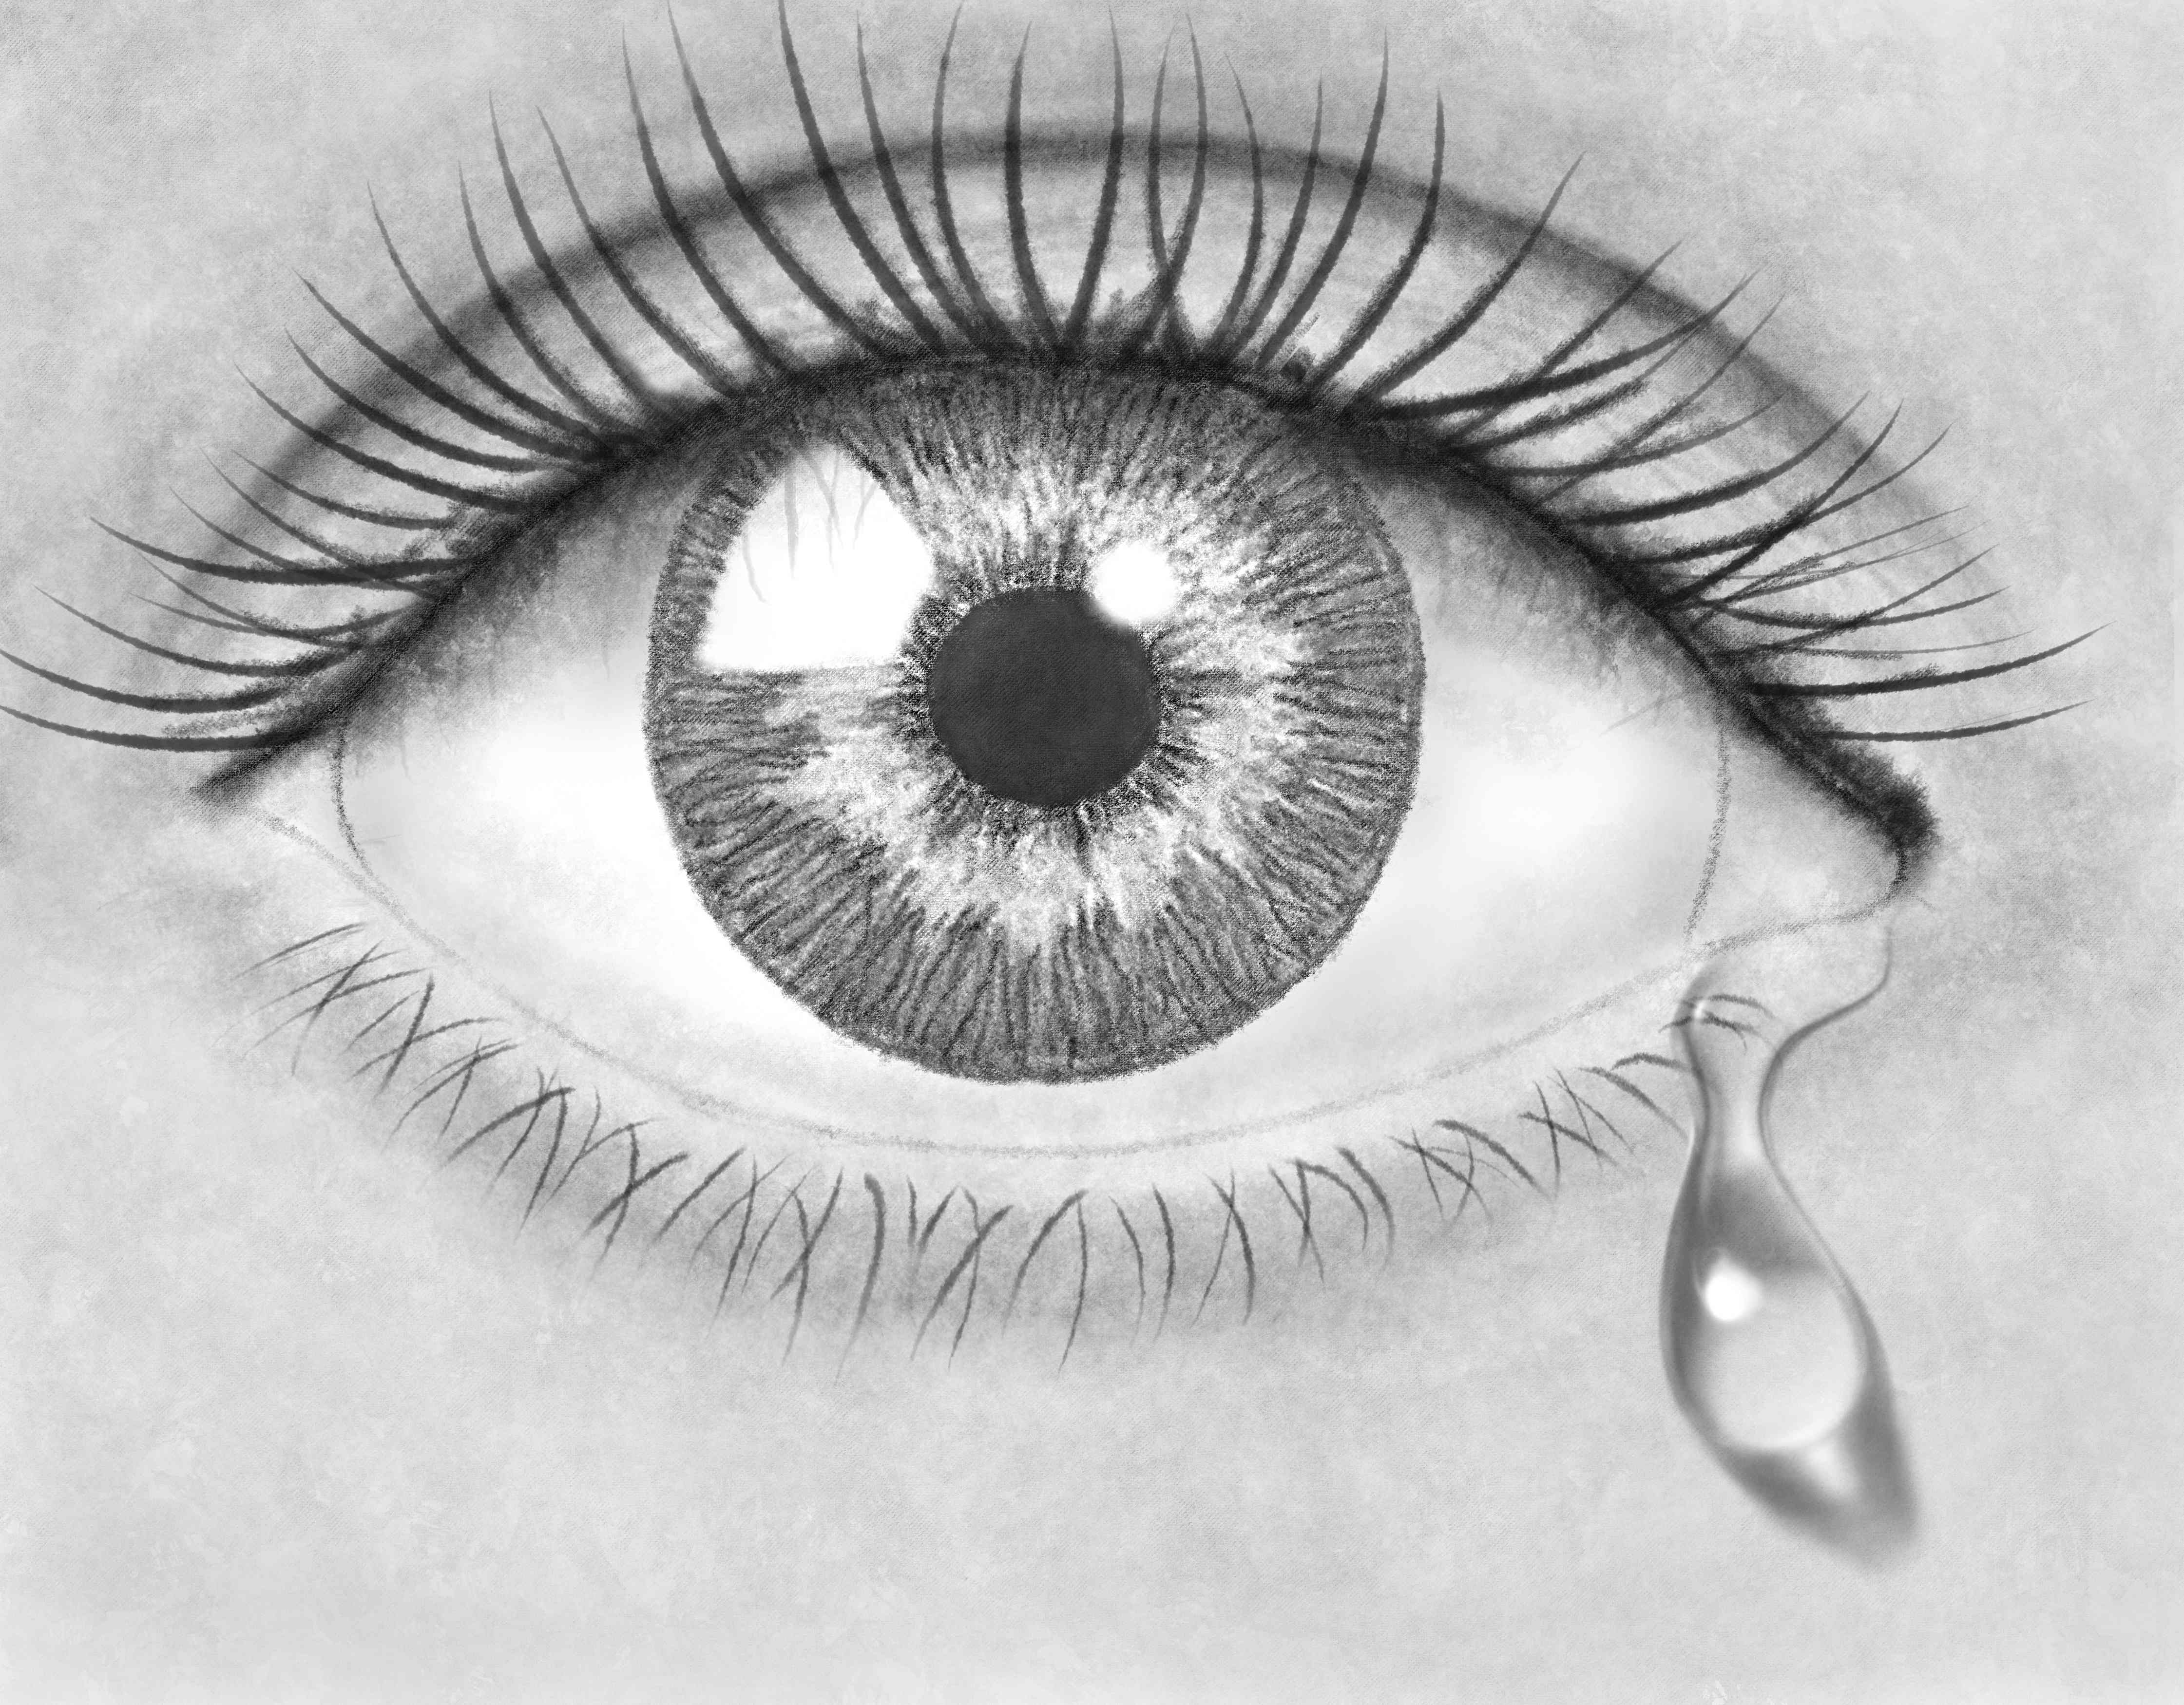 In a new study scientists have found genetic markers associated with depression in people of european descent pencil drawing eye